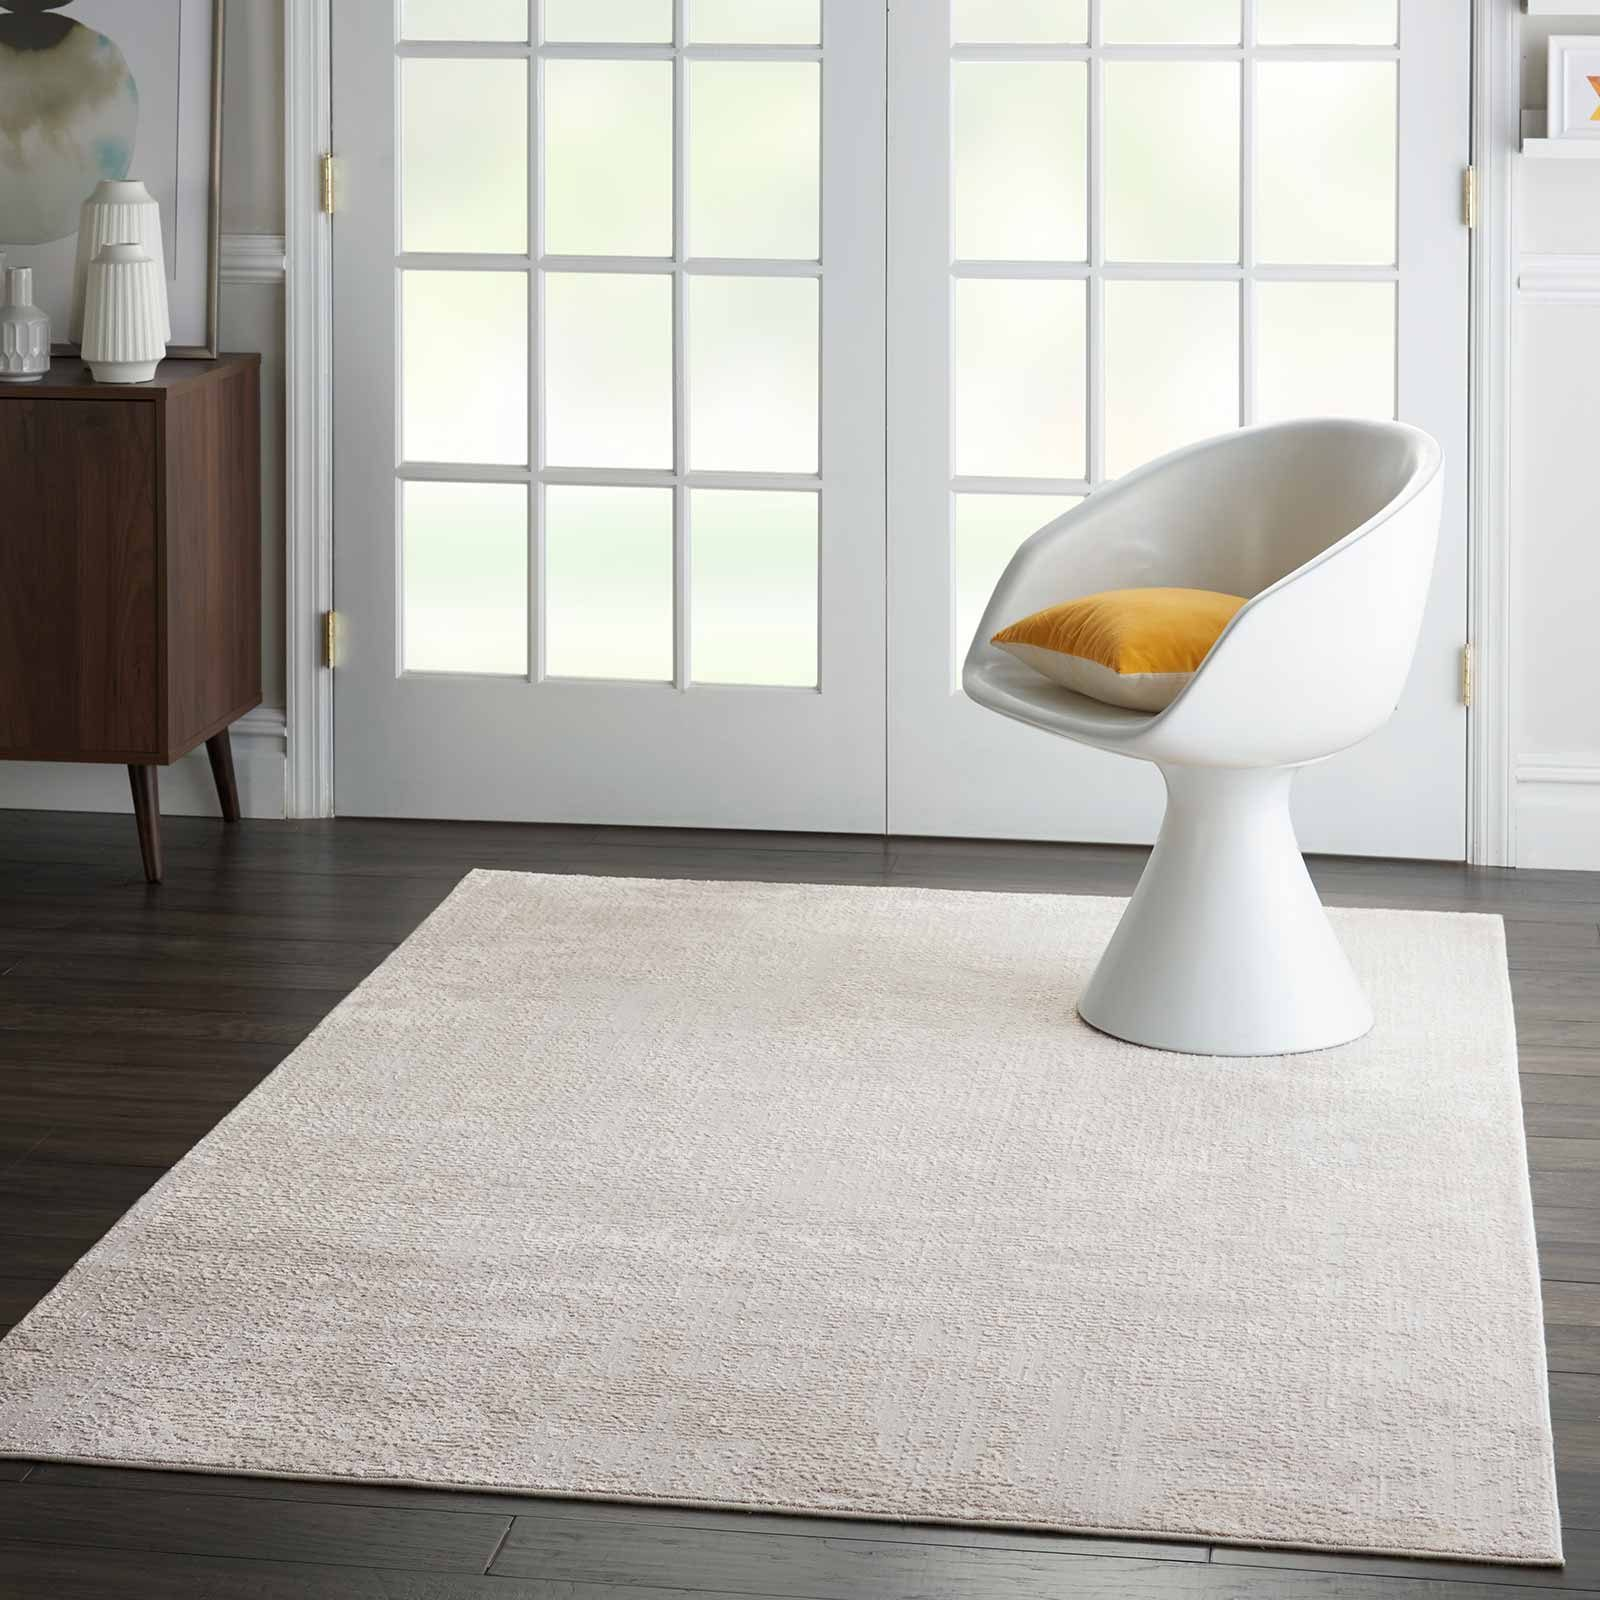 Nourison rug Silky Textures SLY01 IVORY GREY 5x7 099446709837 interior 3 C